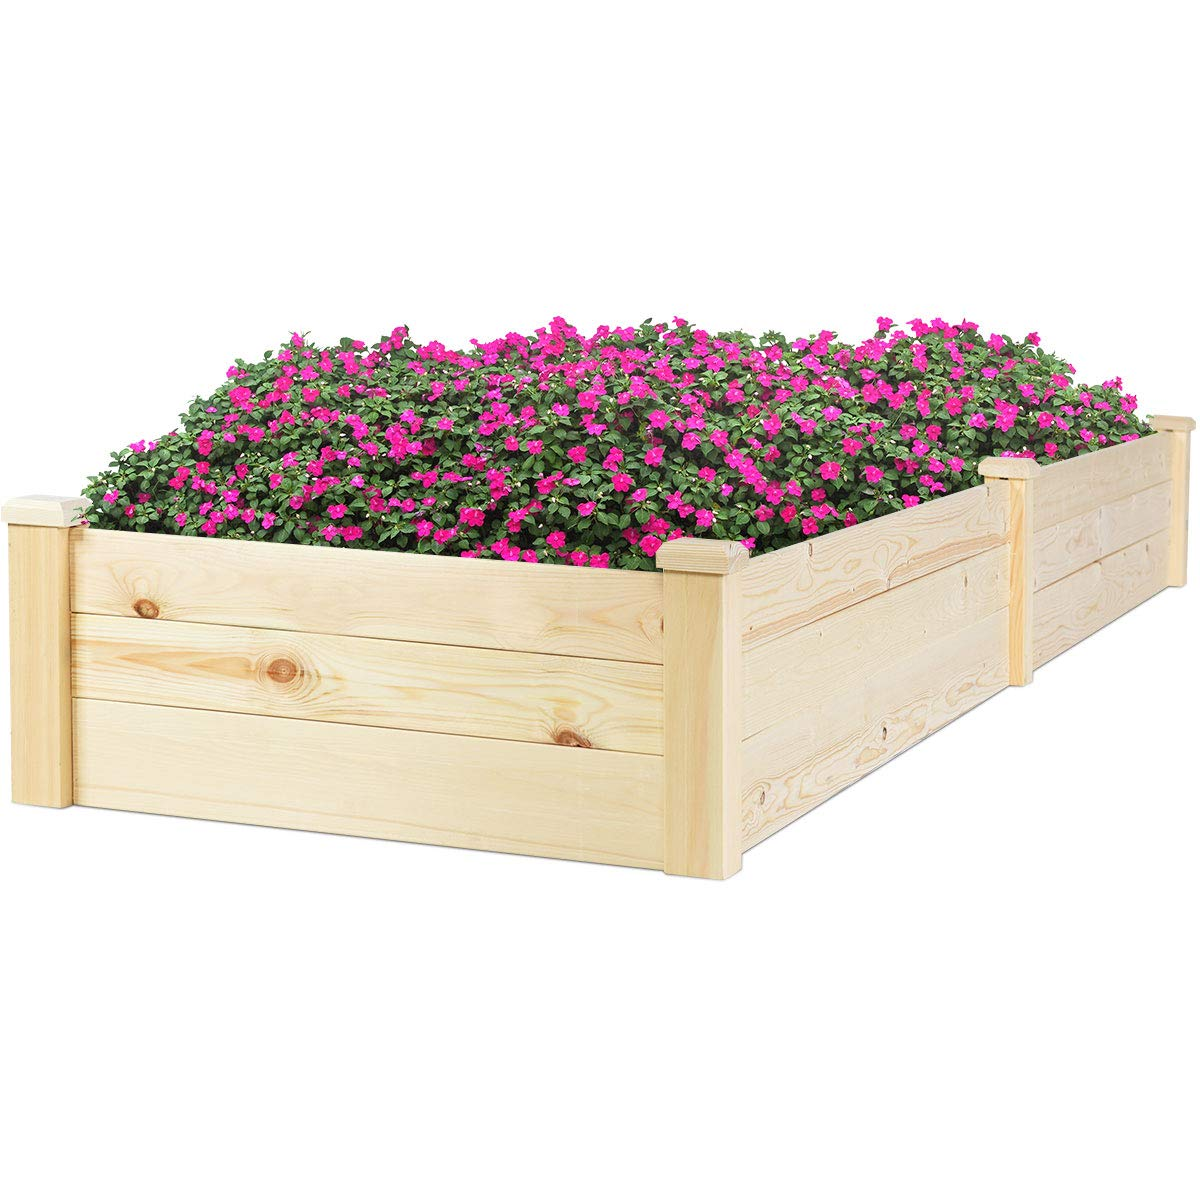 Giantex Raised Garden Bed Planter Wooden Elevated Vegetable Flower Rectangular Planter Kit Box Outdoor Patio Backyard, 97''Lx 25.5''Wx 10''H